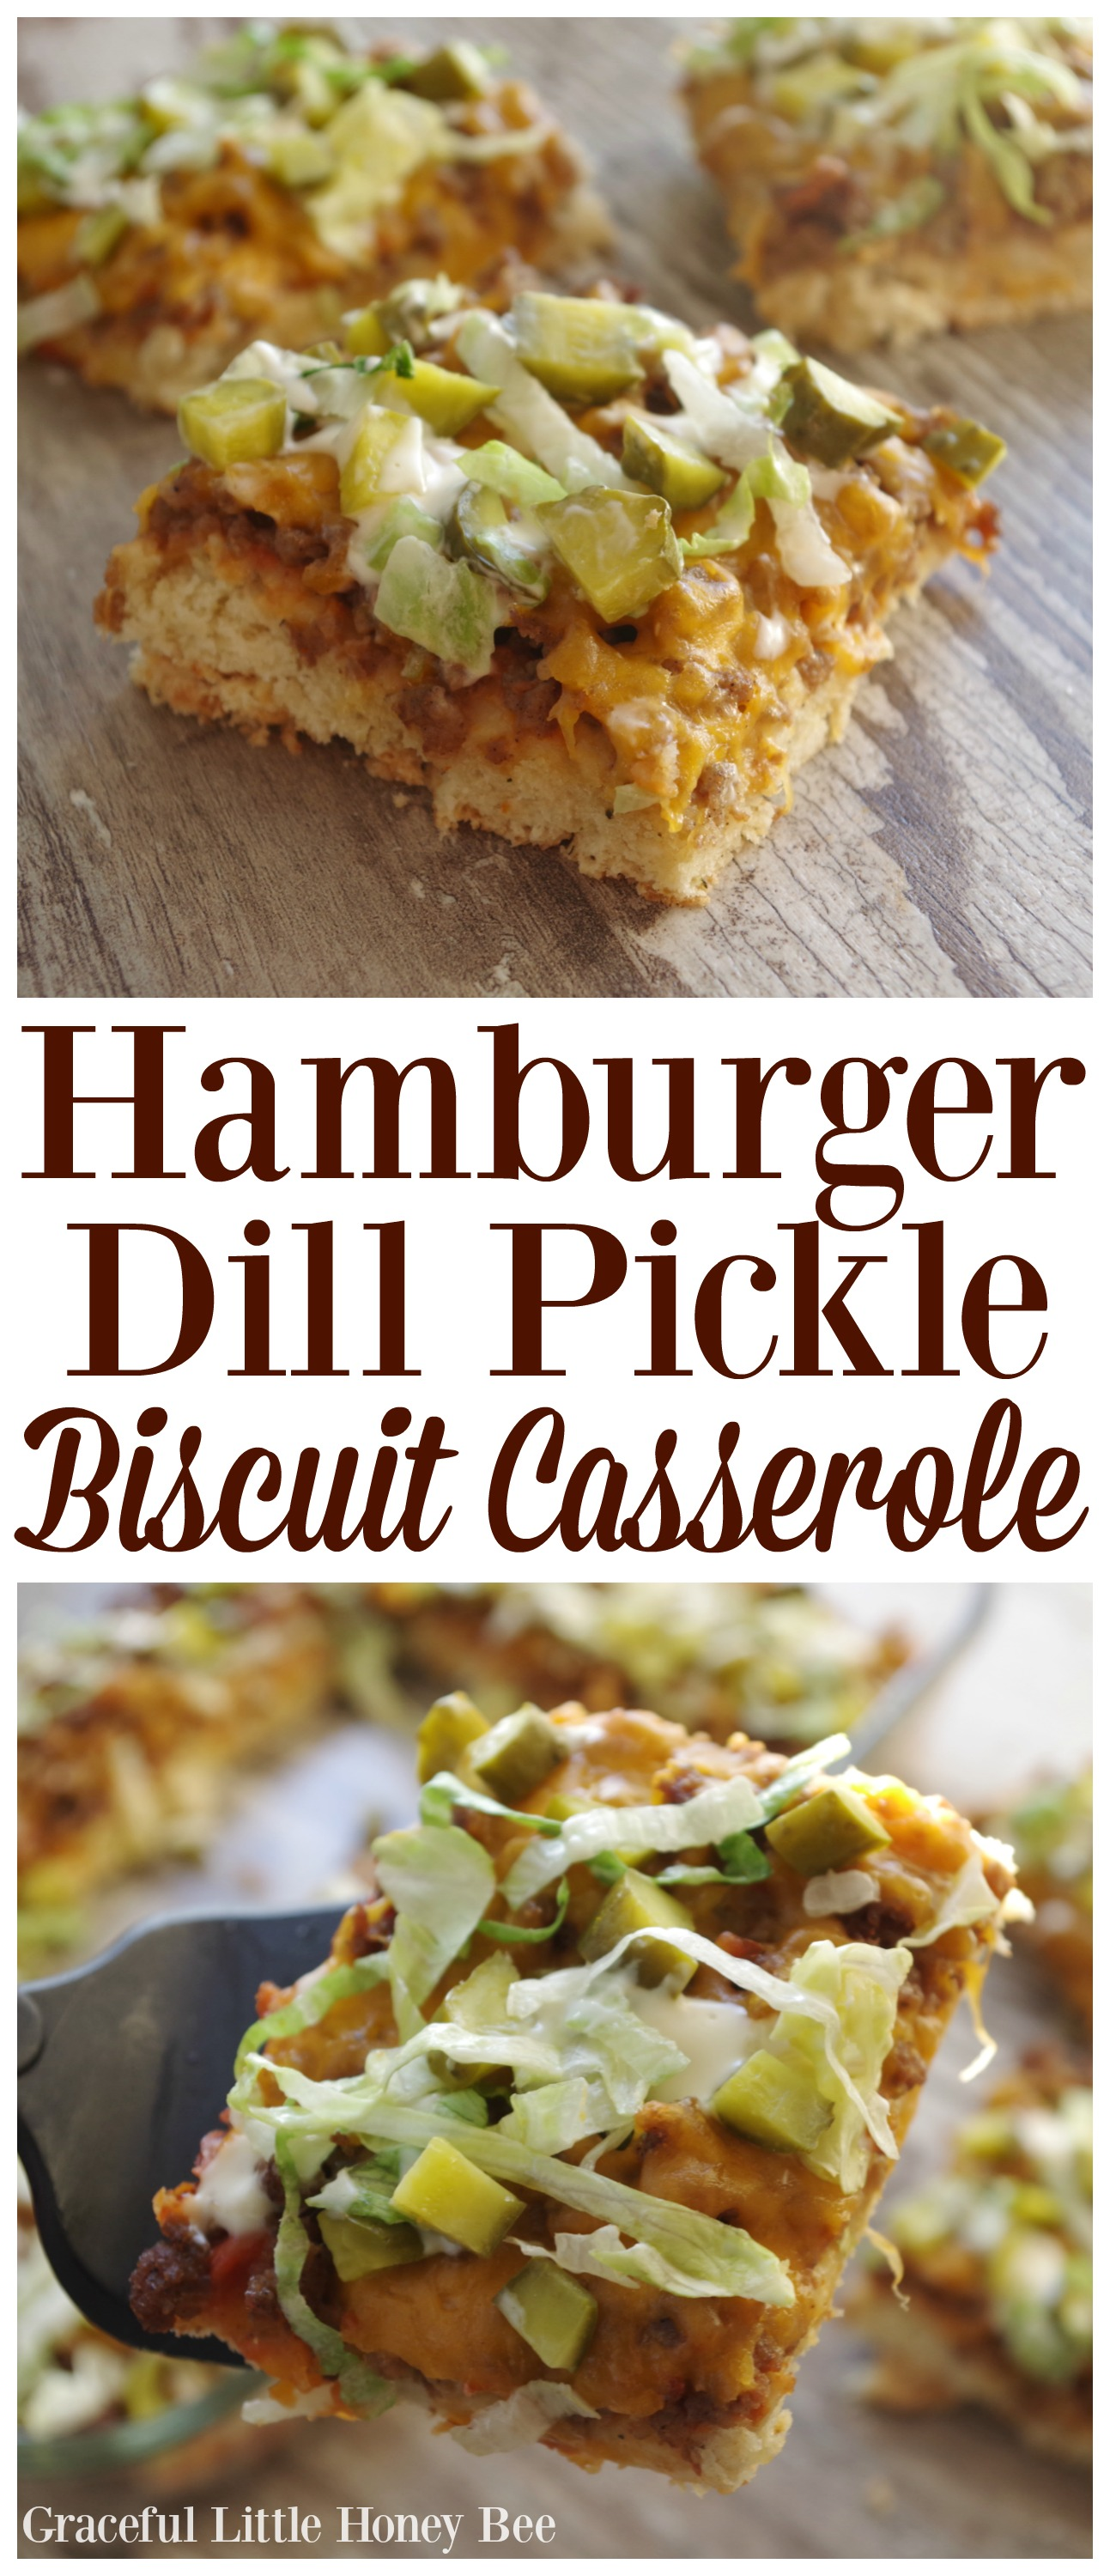 Hamburger Dill Pickle Biscuit Casserole